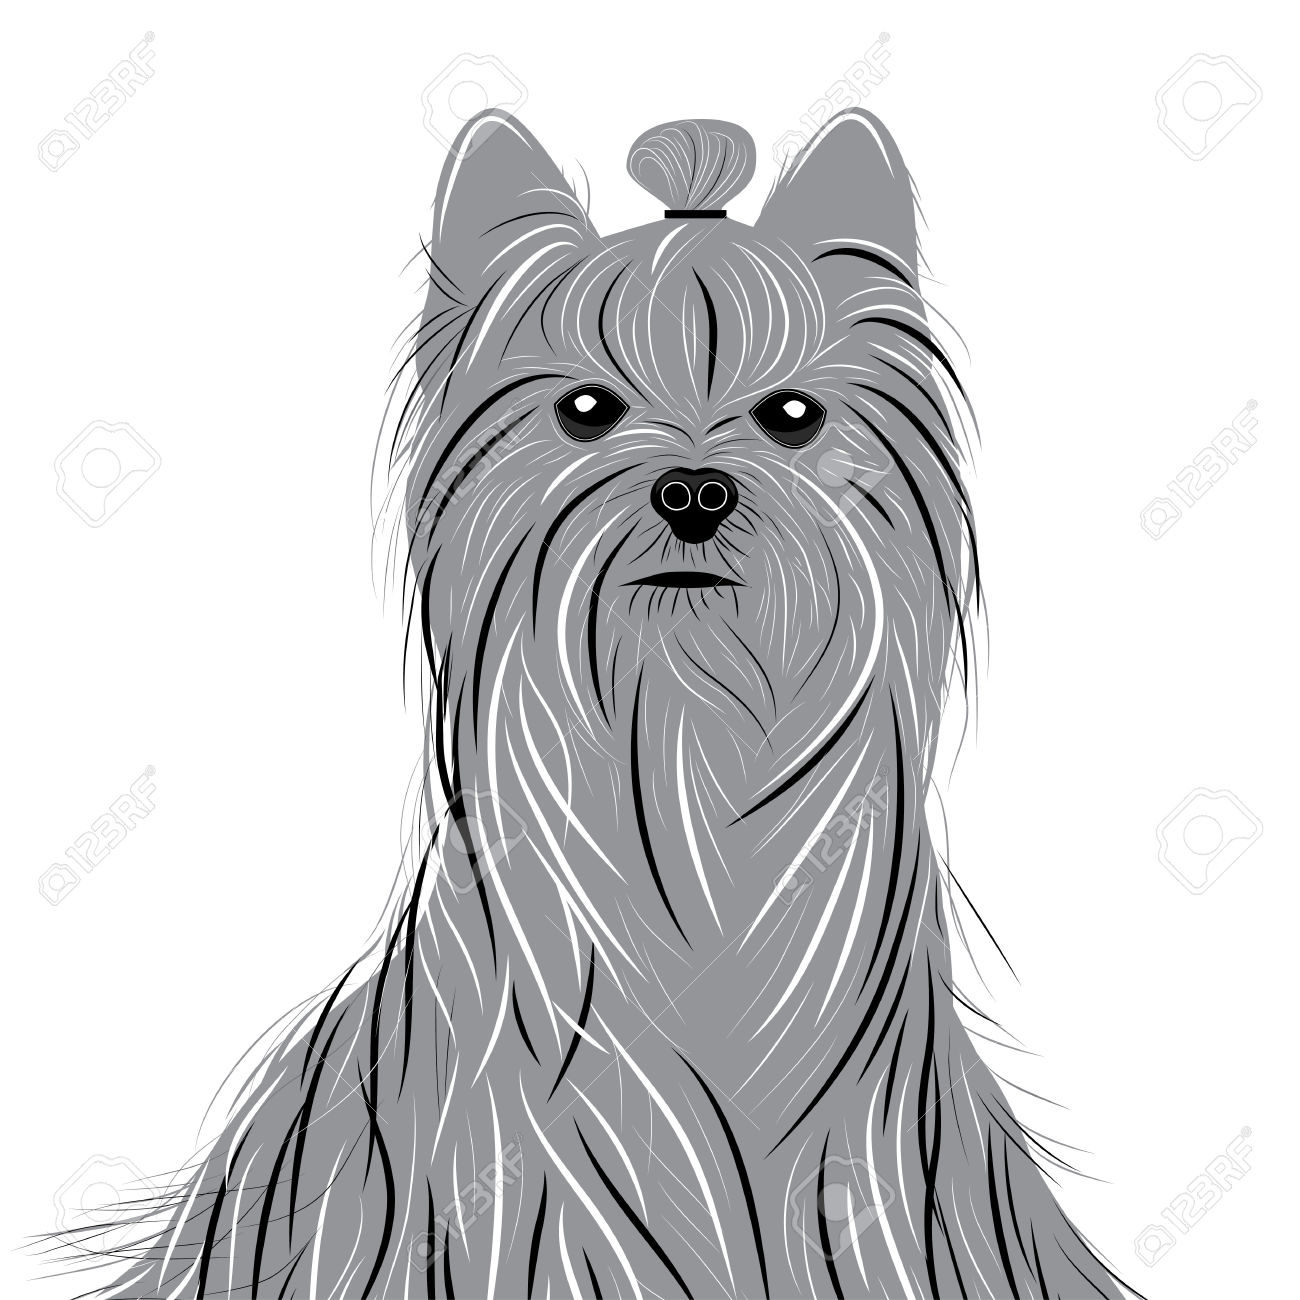 197 Yorkie Stock Illustrations, Cliparts And Royalty Free Yorkie.